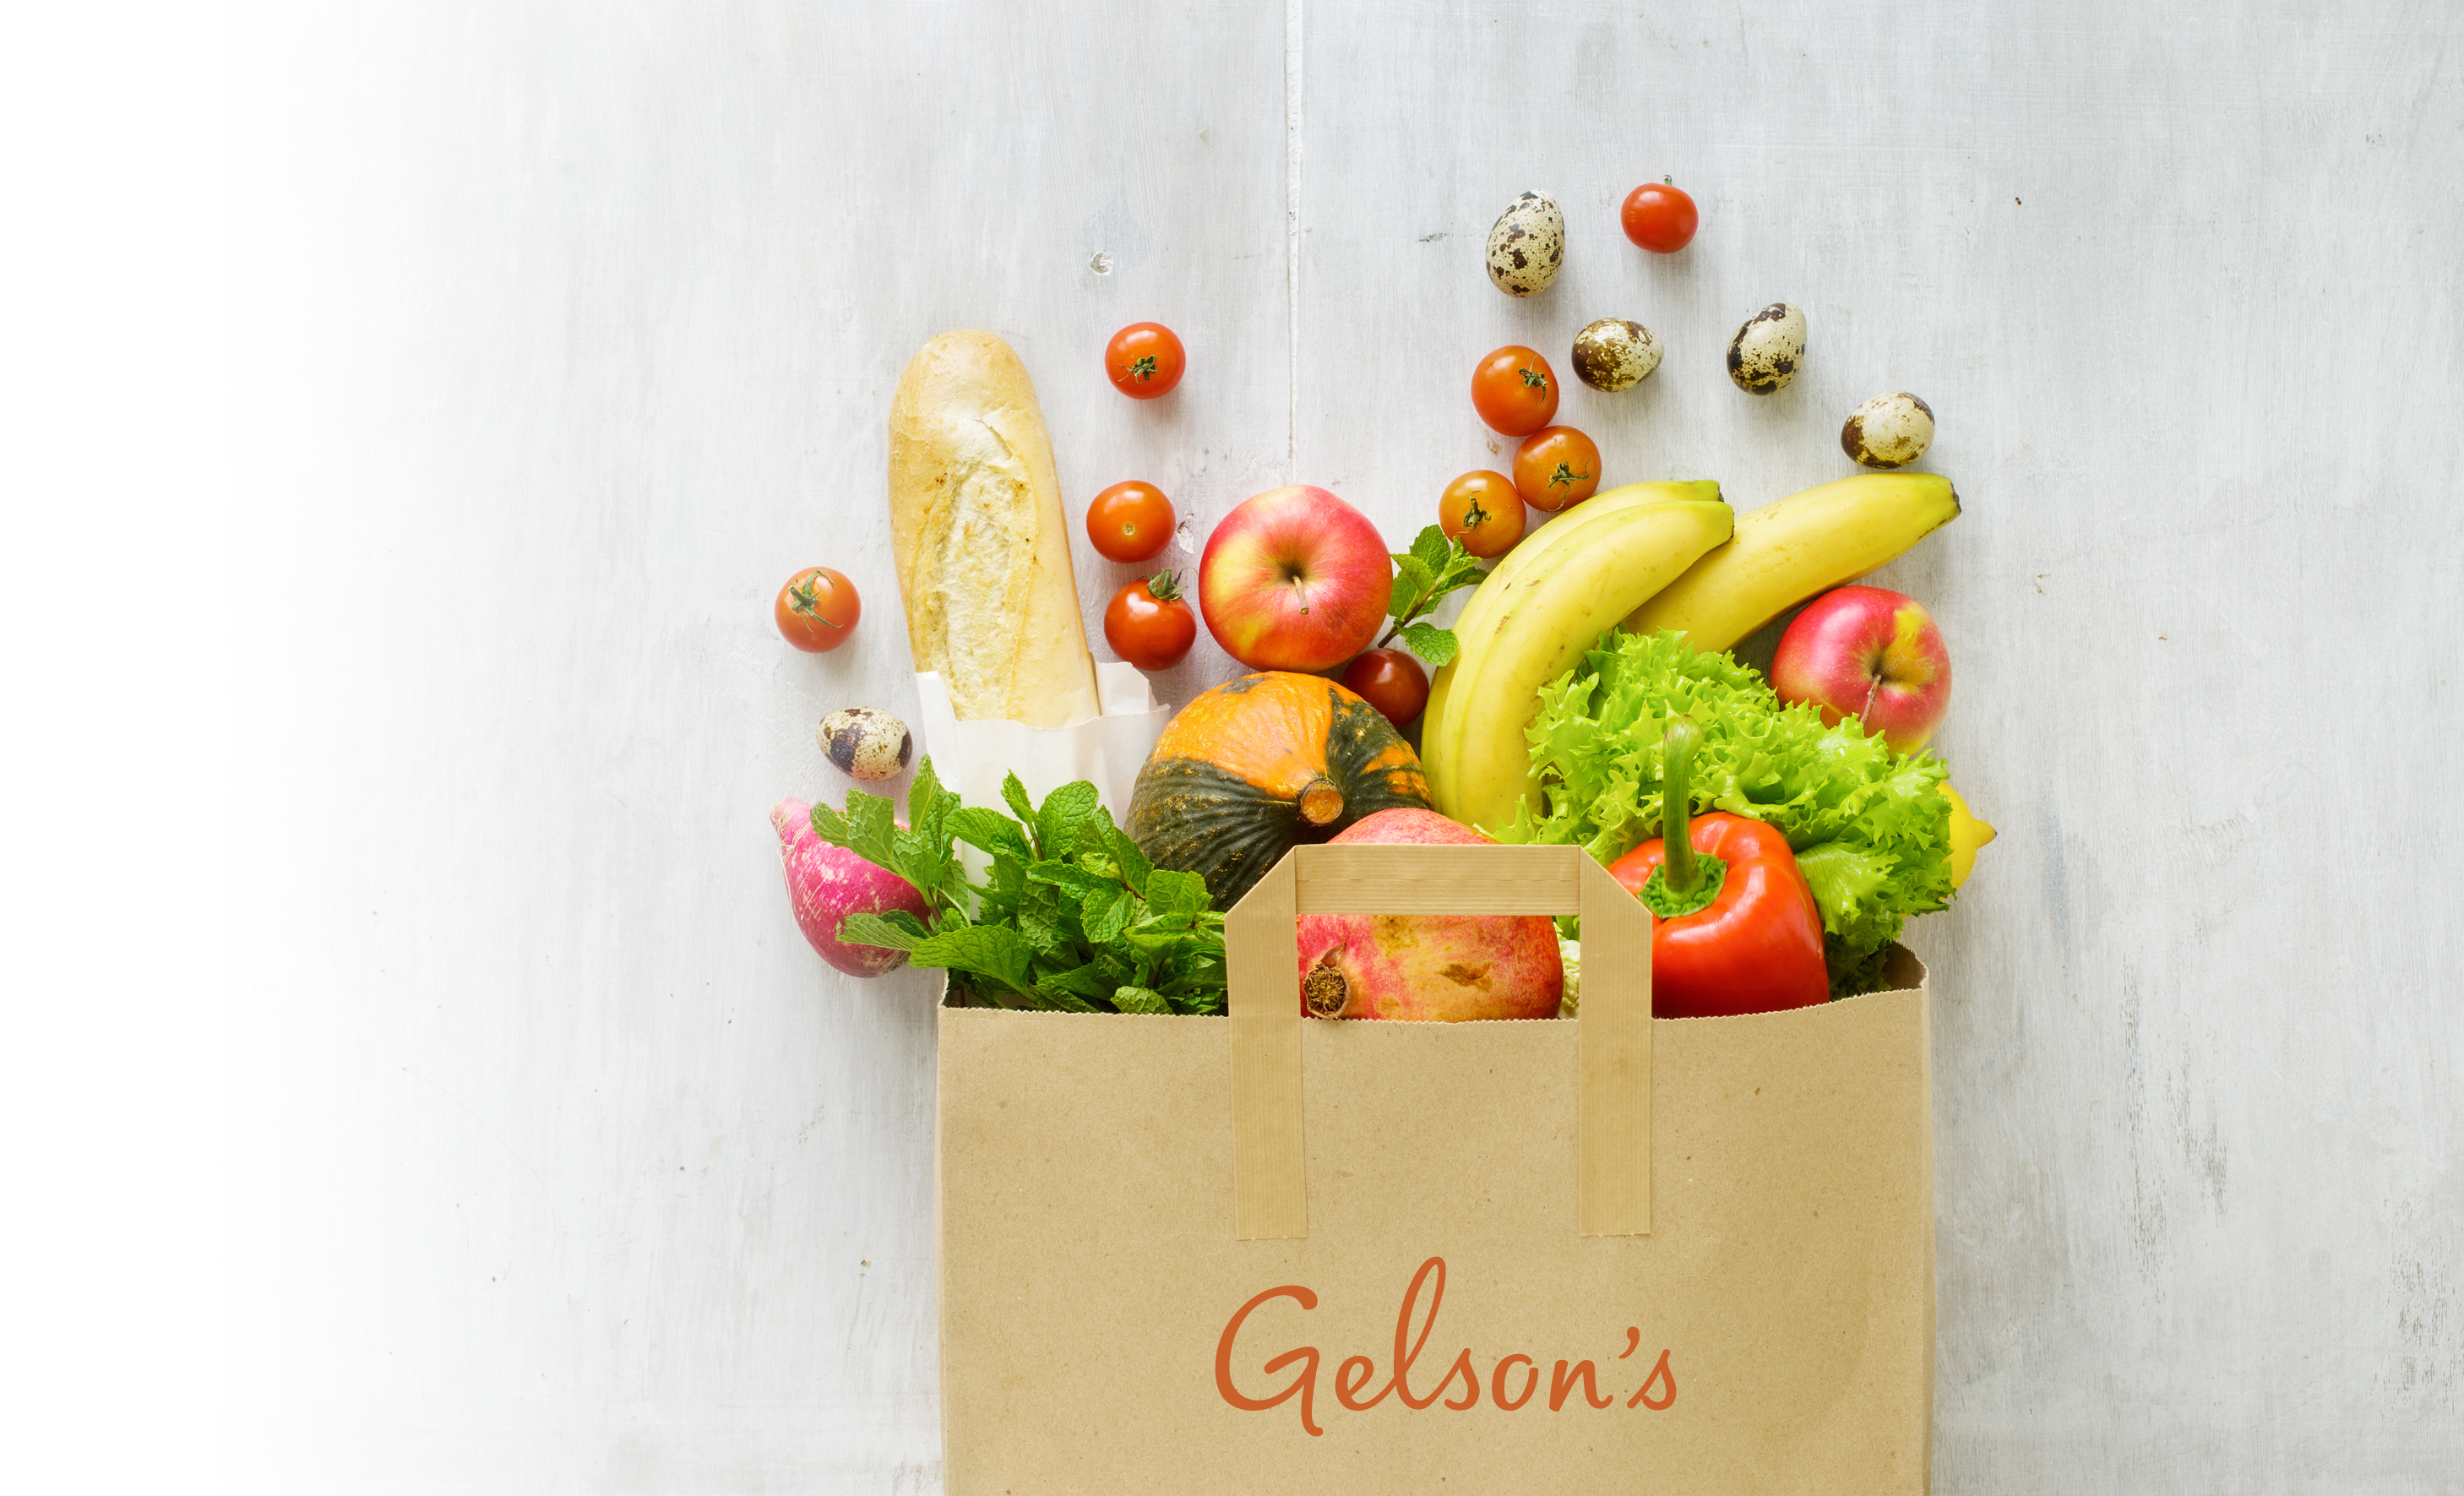 Grocery bag with Gelson's logo filled with fresh fruit and vegetables